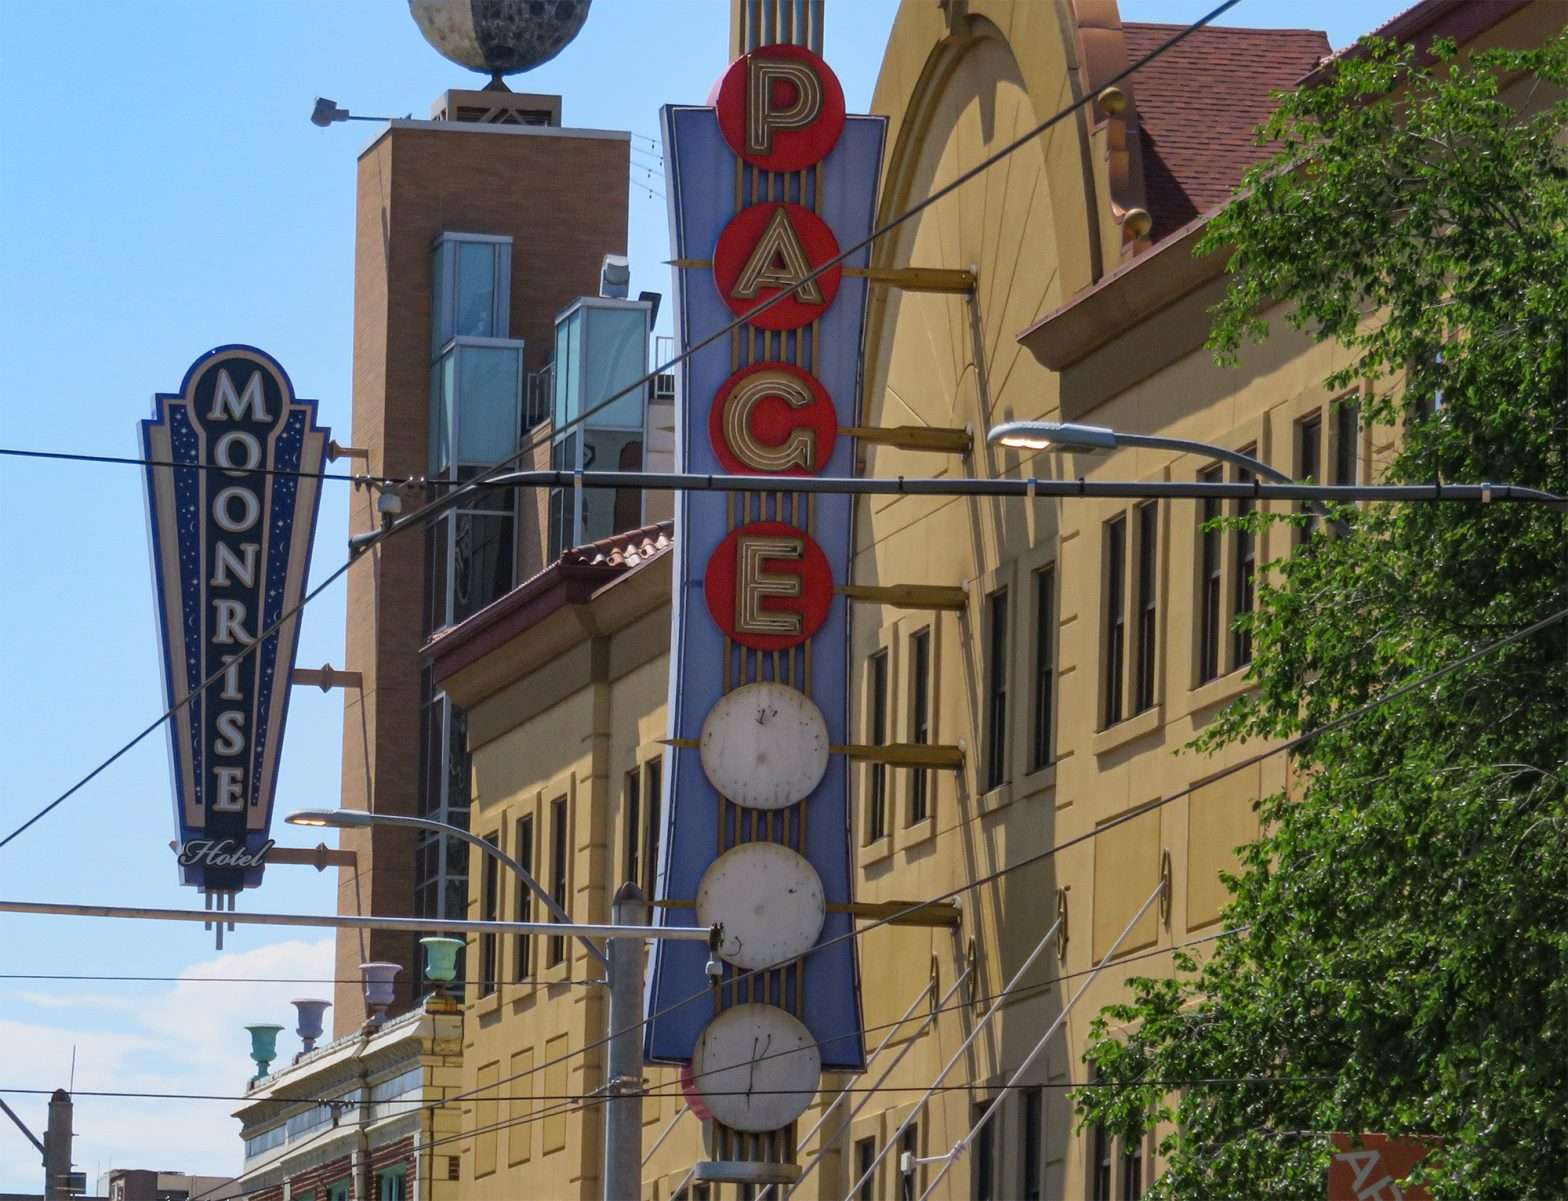 Pageant Concert venue getting new letters on outside sign in The Delmar Loop. (credit craig currie June 1, 2020)